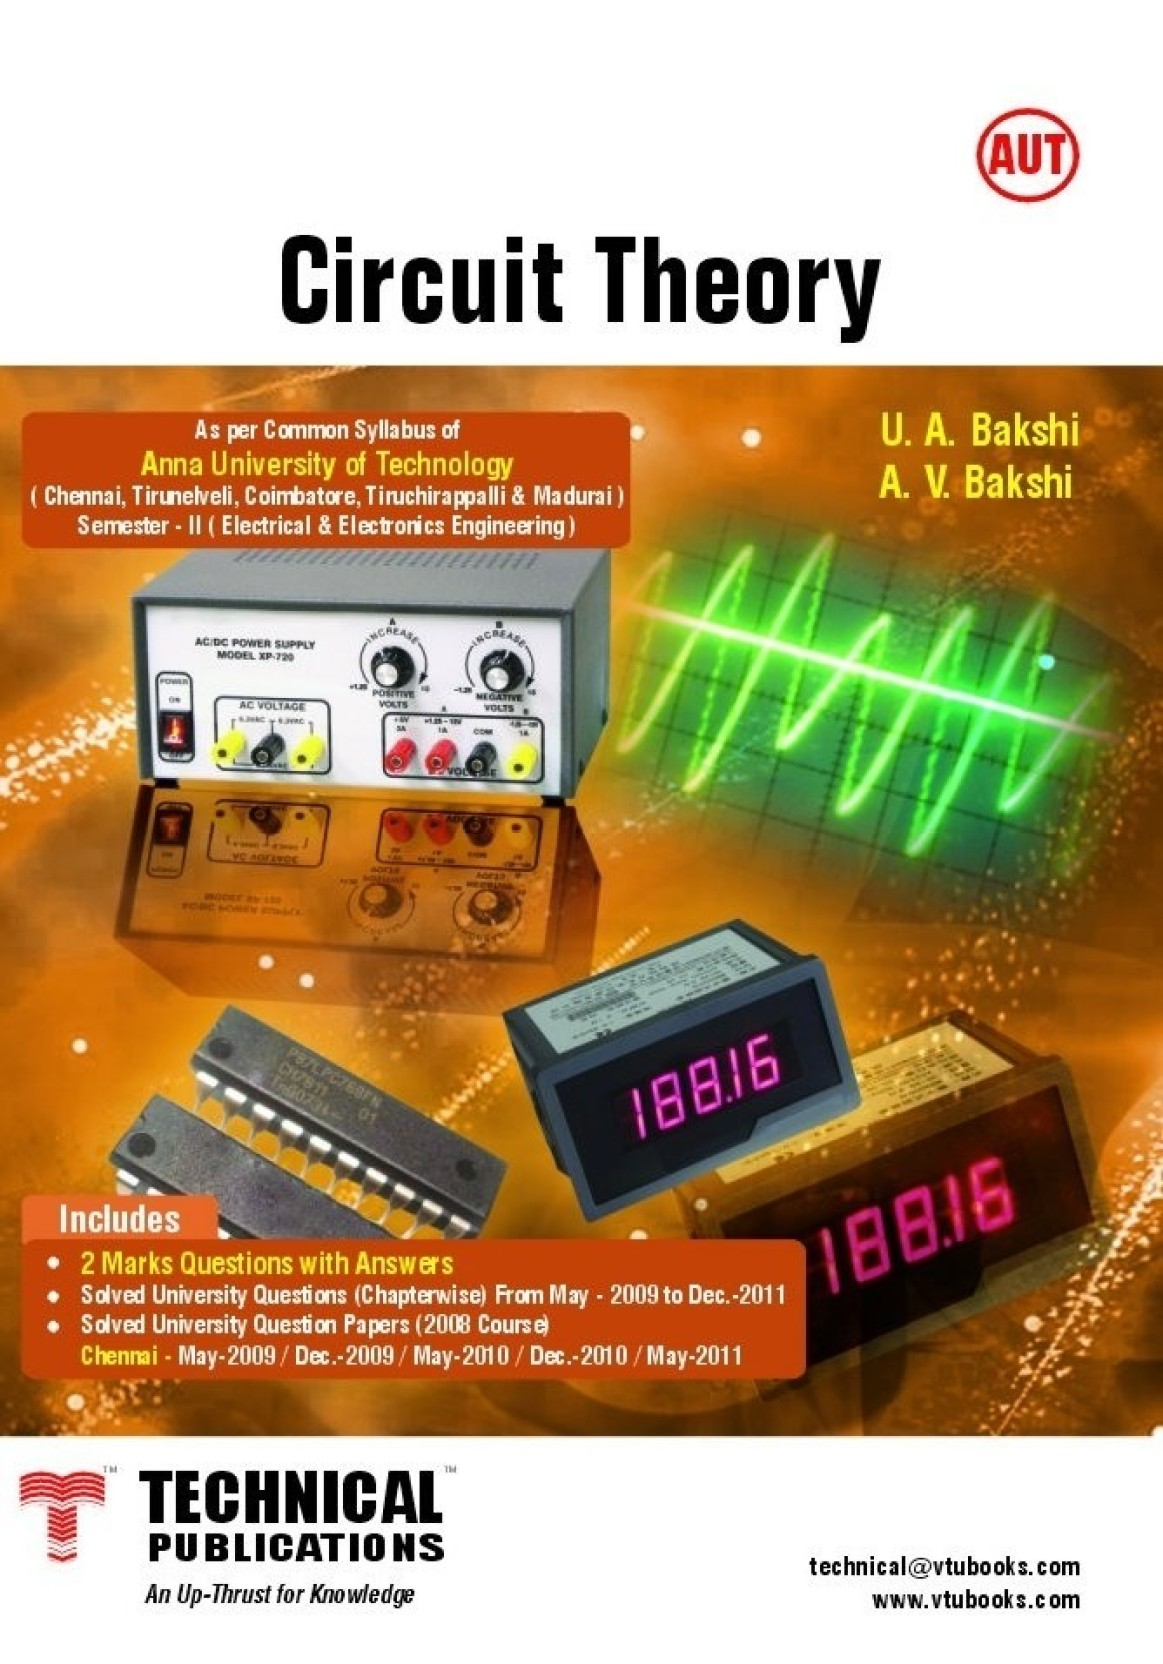 Circuit Theory For Anna University Of Technology 2nd Edition Buy Electronic Design Questions Share